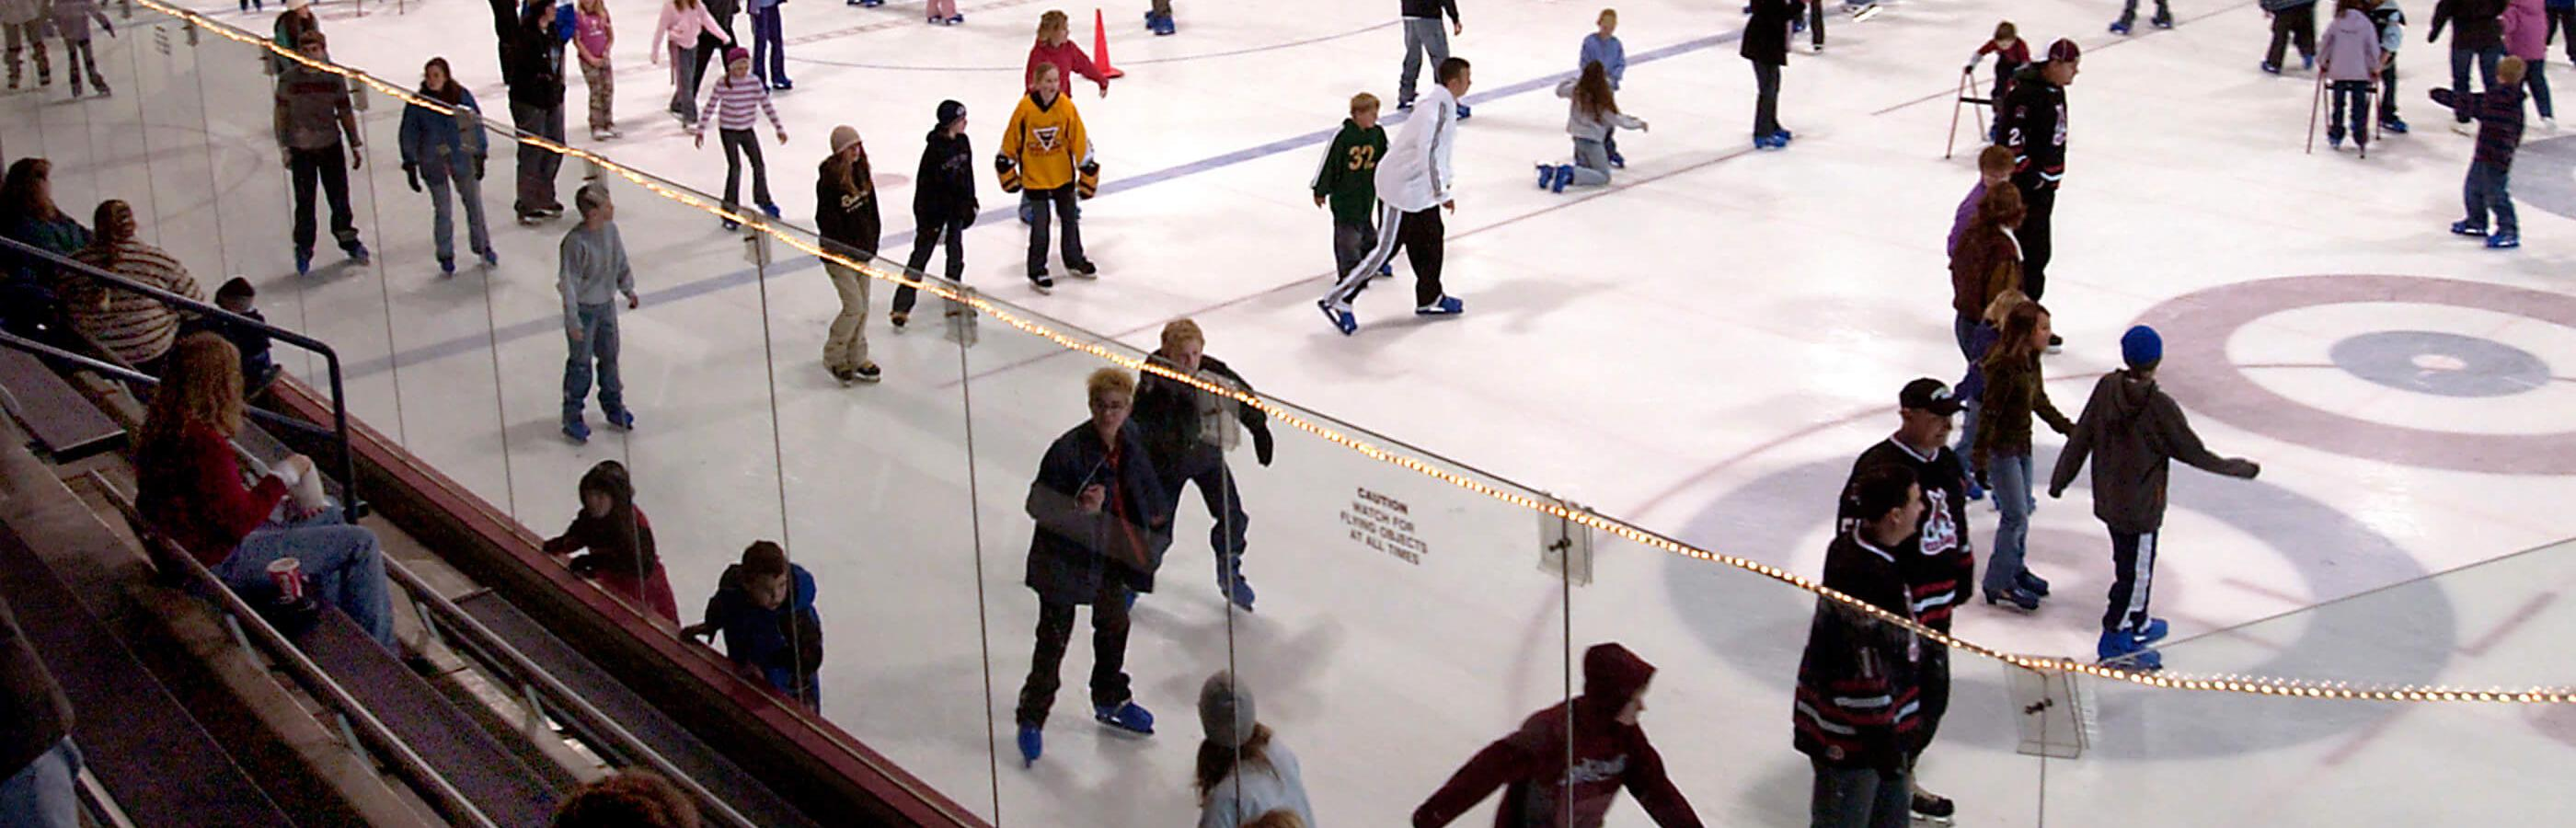 Free Skate At The Roosevelt Ice Rink